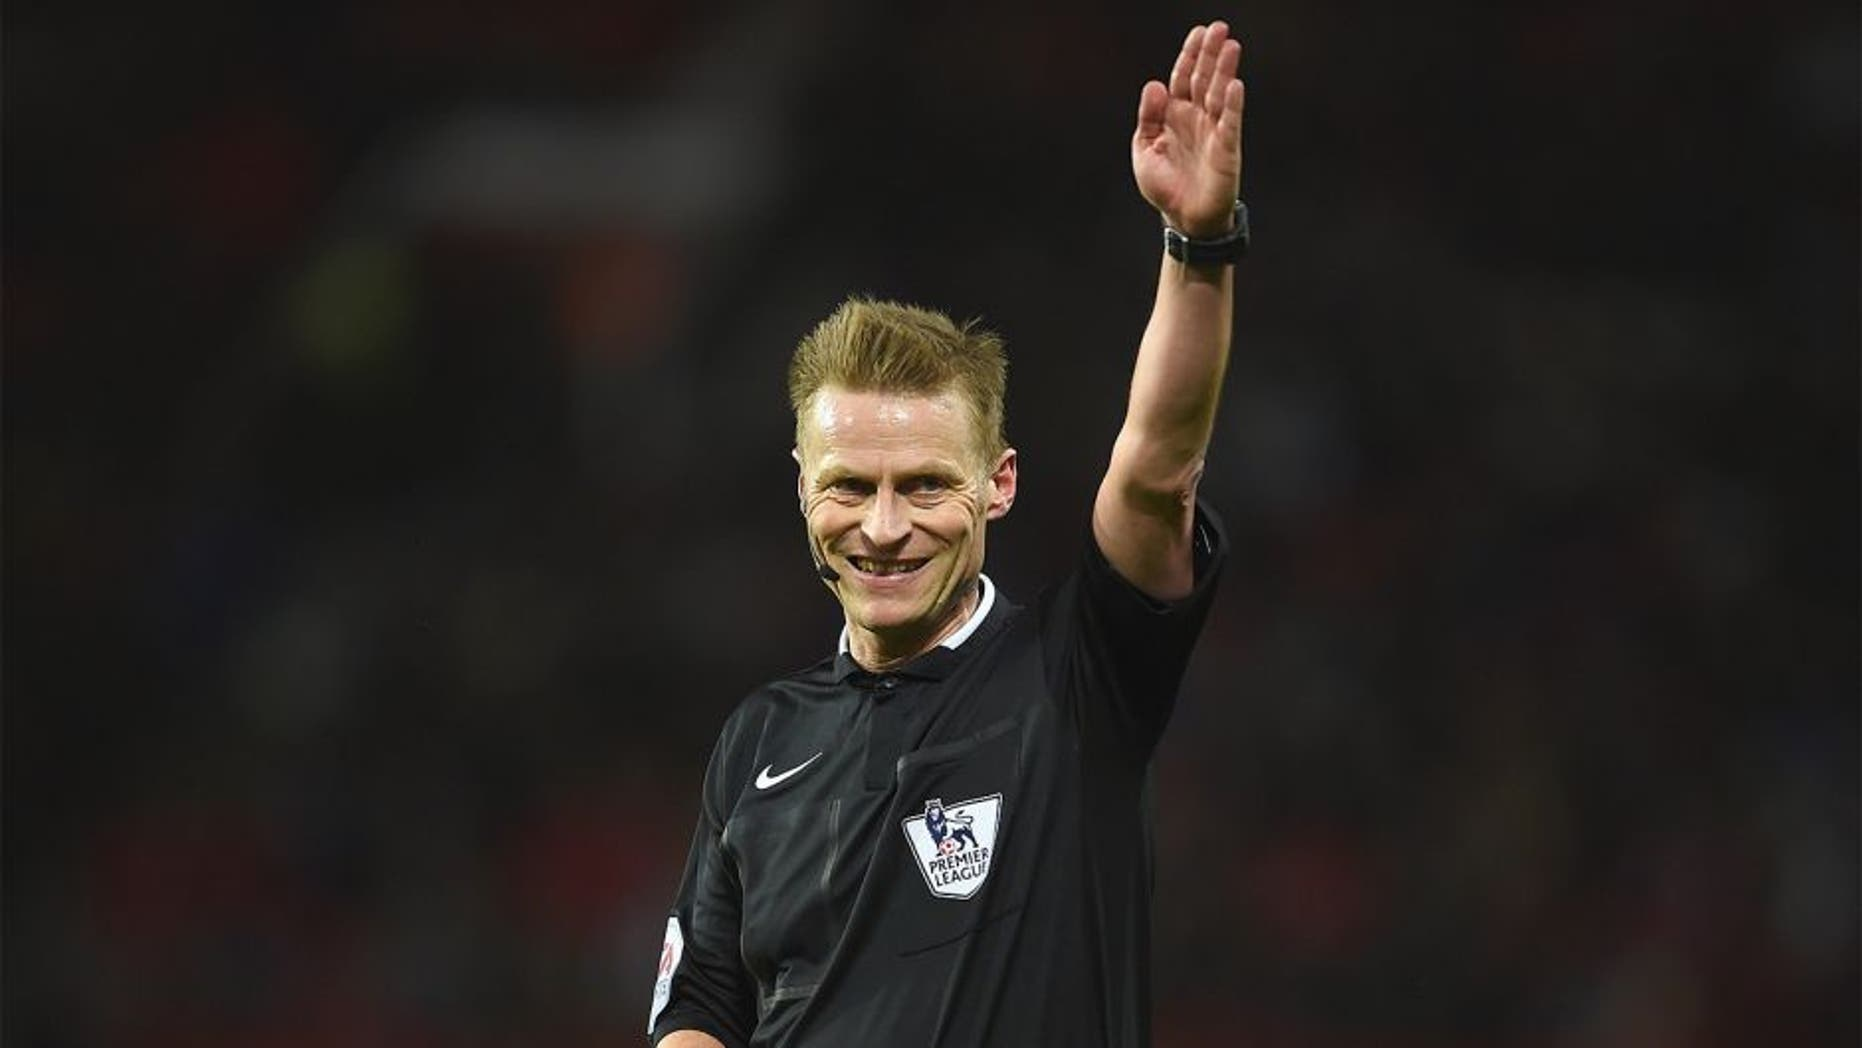 MANCHESTER, ENGLAND - MARCH 02: Referee Mike Jones gestures during the Barclays Premier League match between Manchester United and Watford at Old Trafford on March 2, 2016 in Manchester, England. (Photo by Laurence Griffiths/Getty Images)